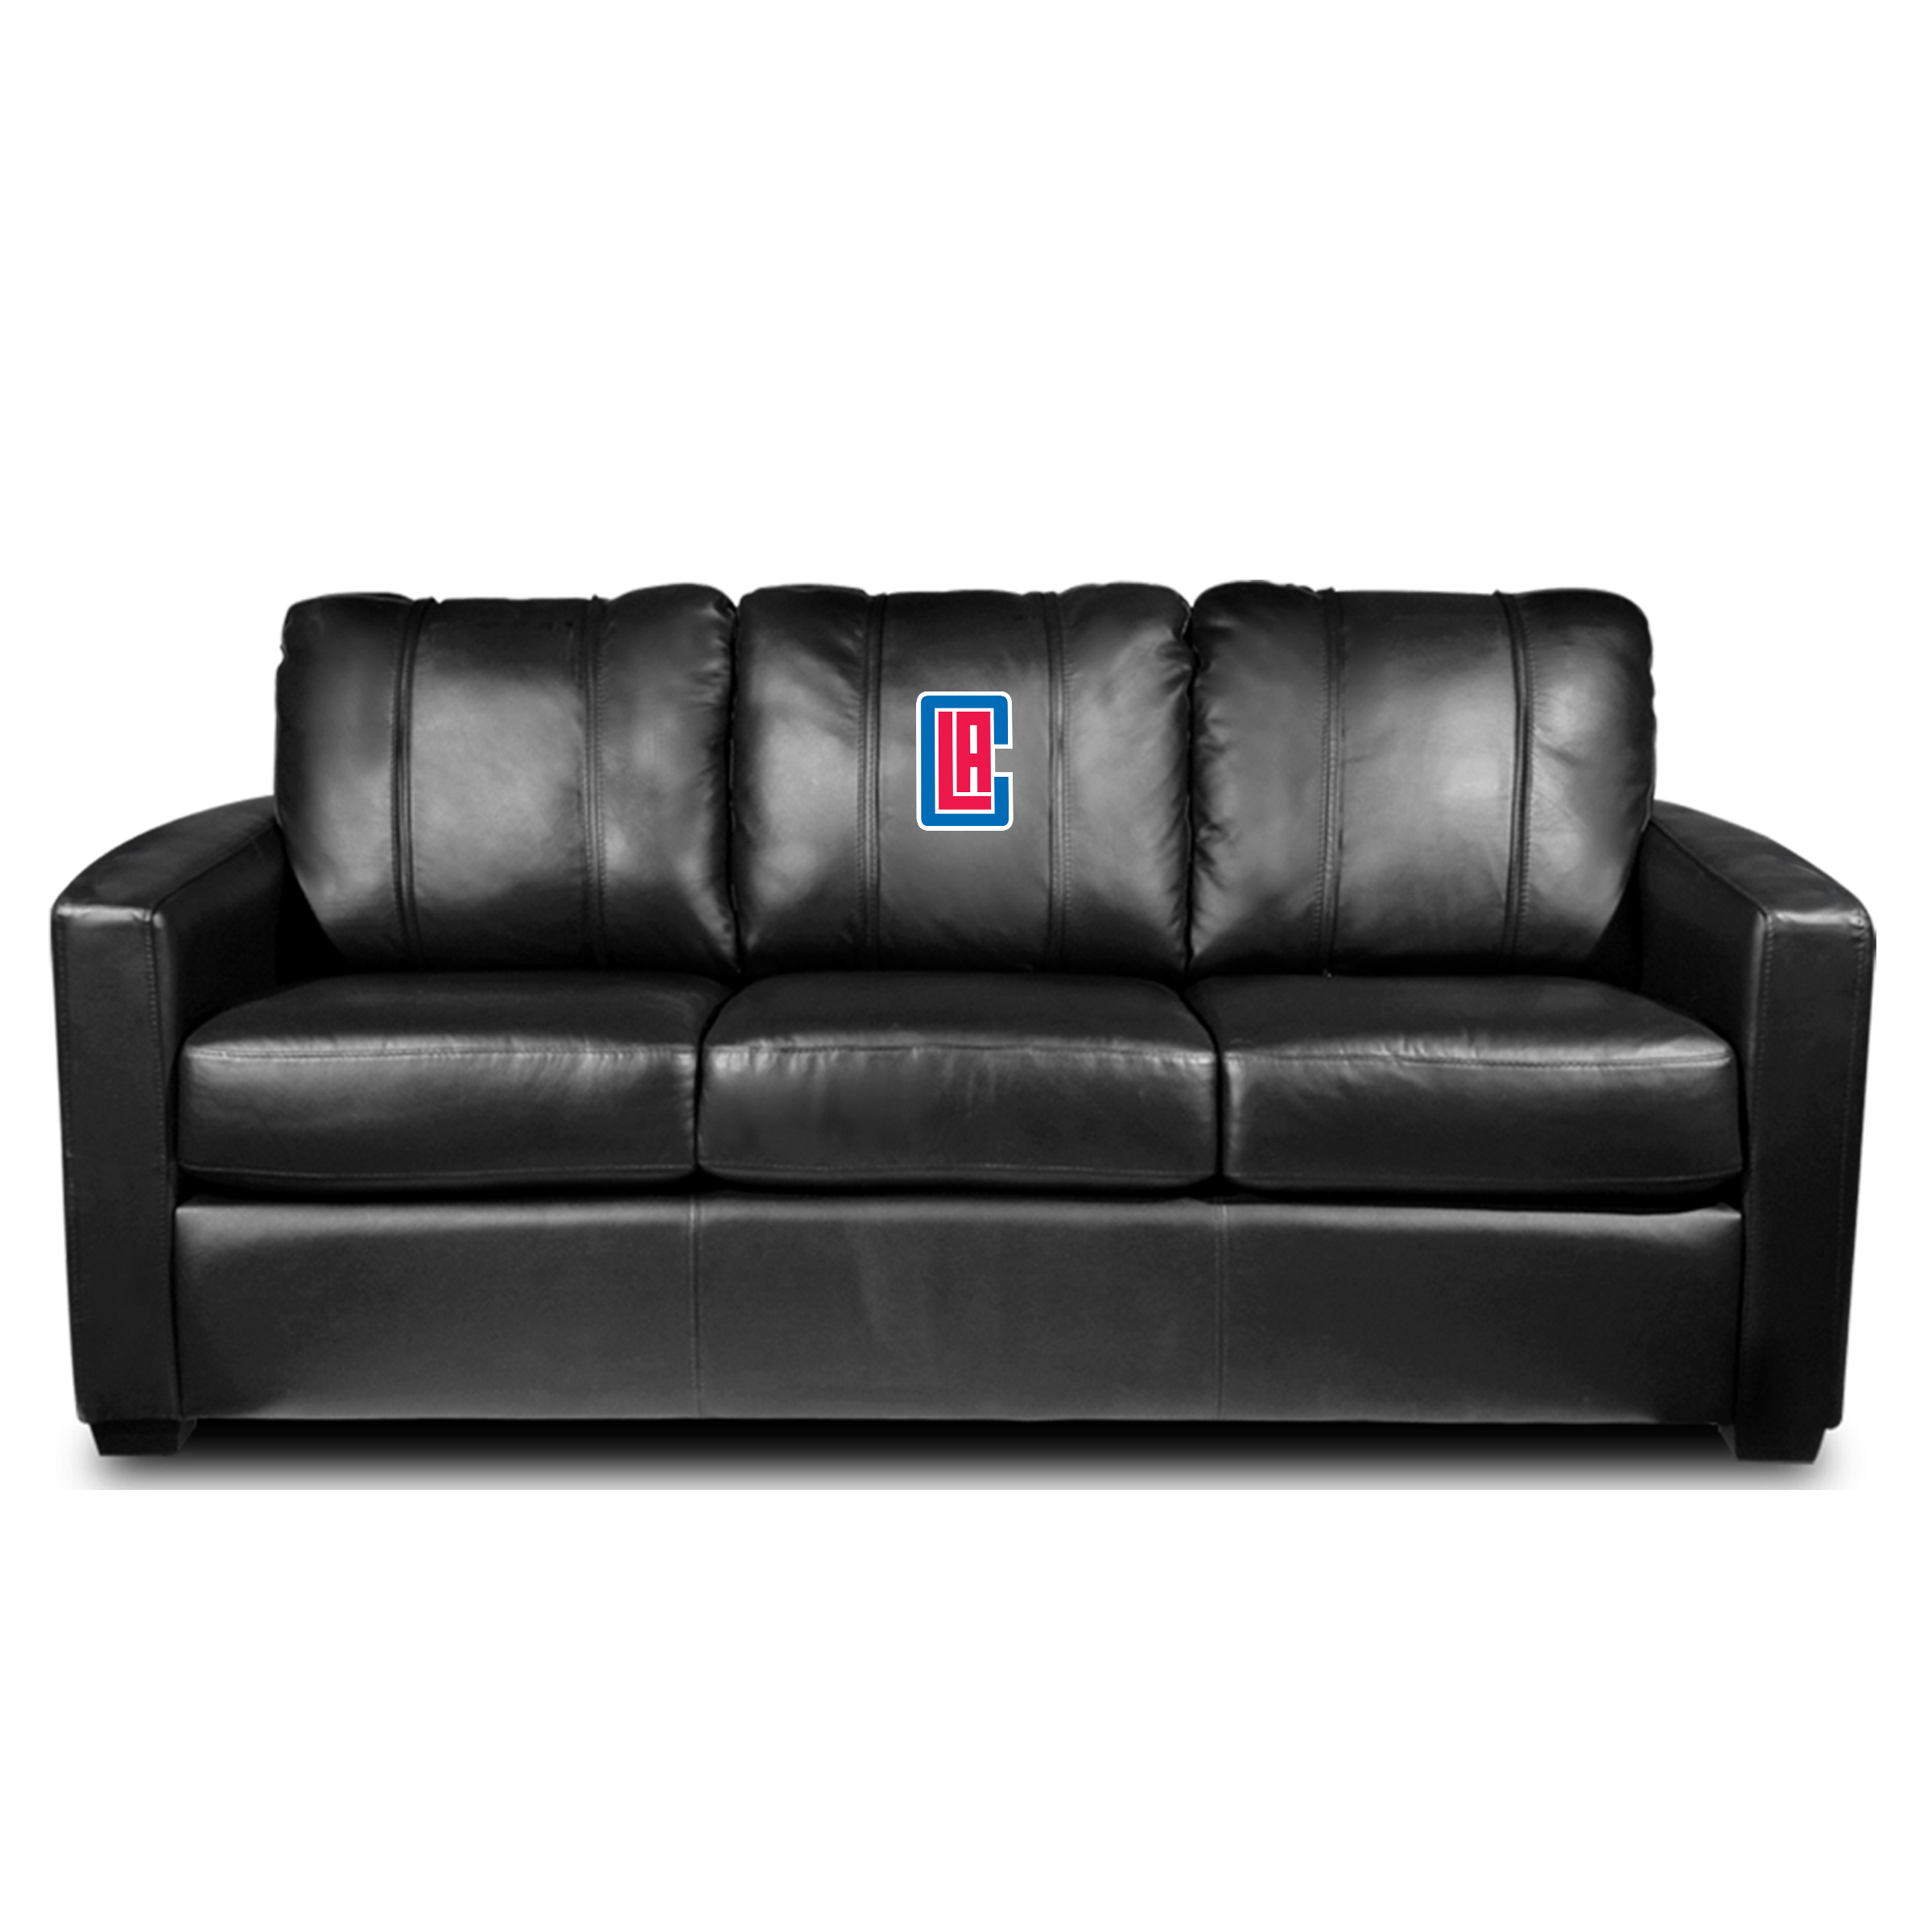 Los Angeles Clippers NBA Silver Sofa with Secondary Logo Panel